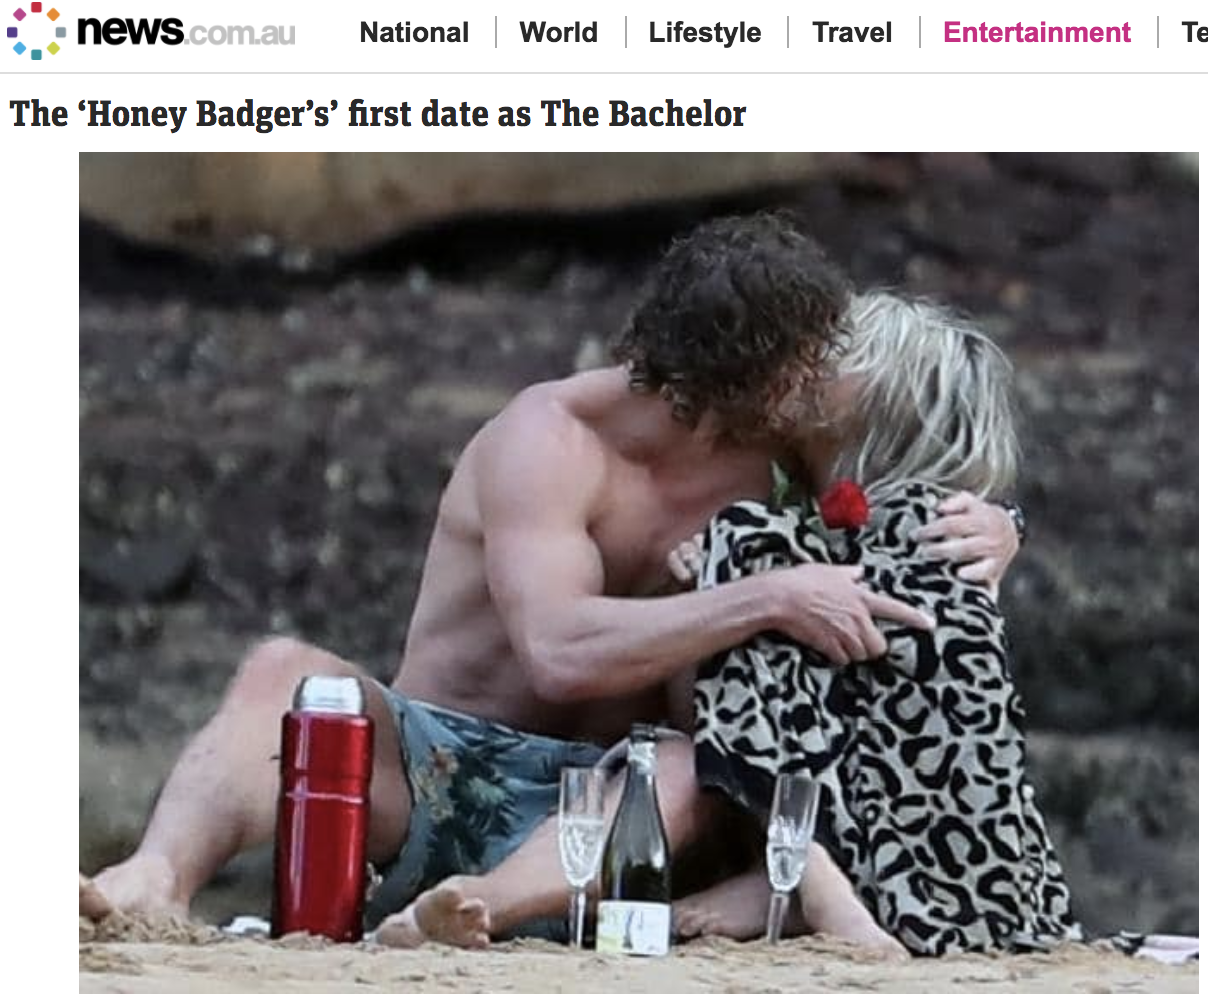 The Bachelor paparrazi photo (news.com.au) [3]